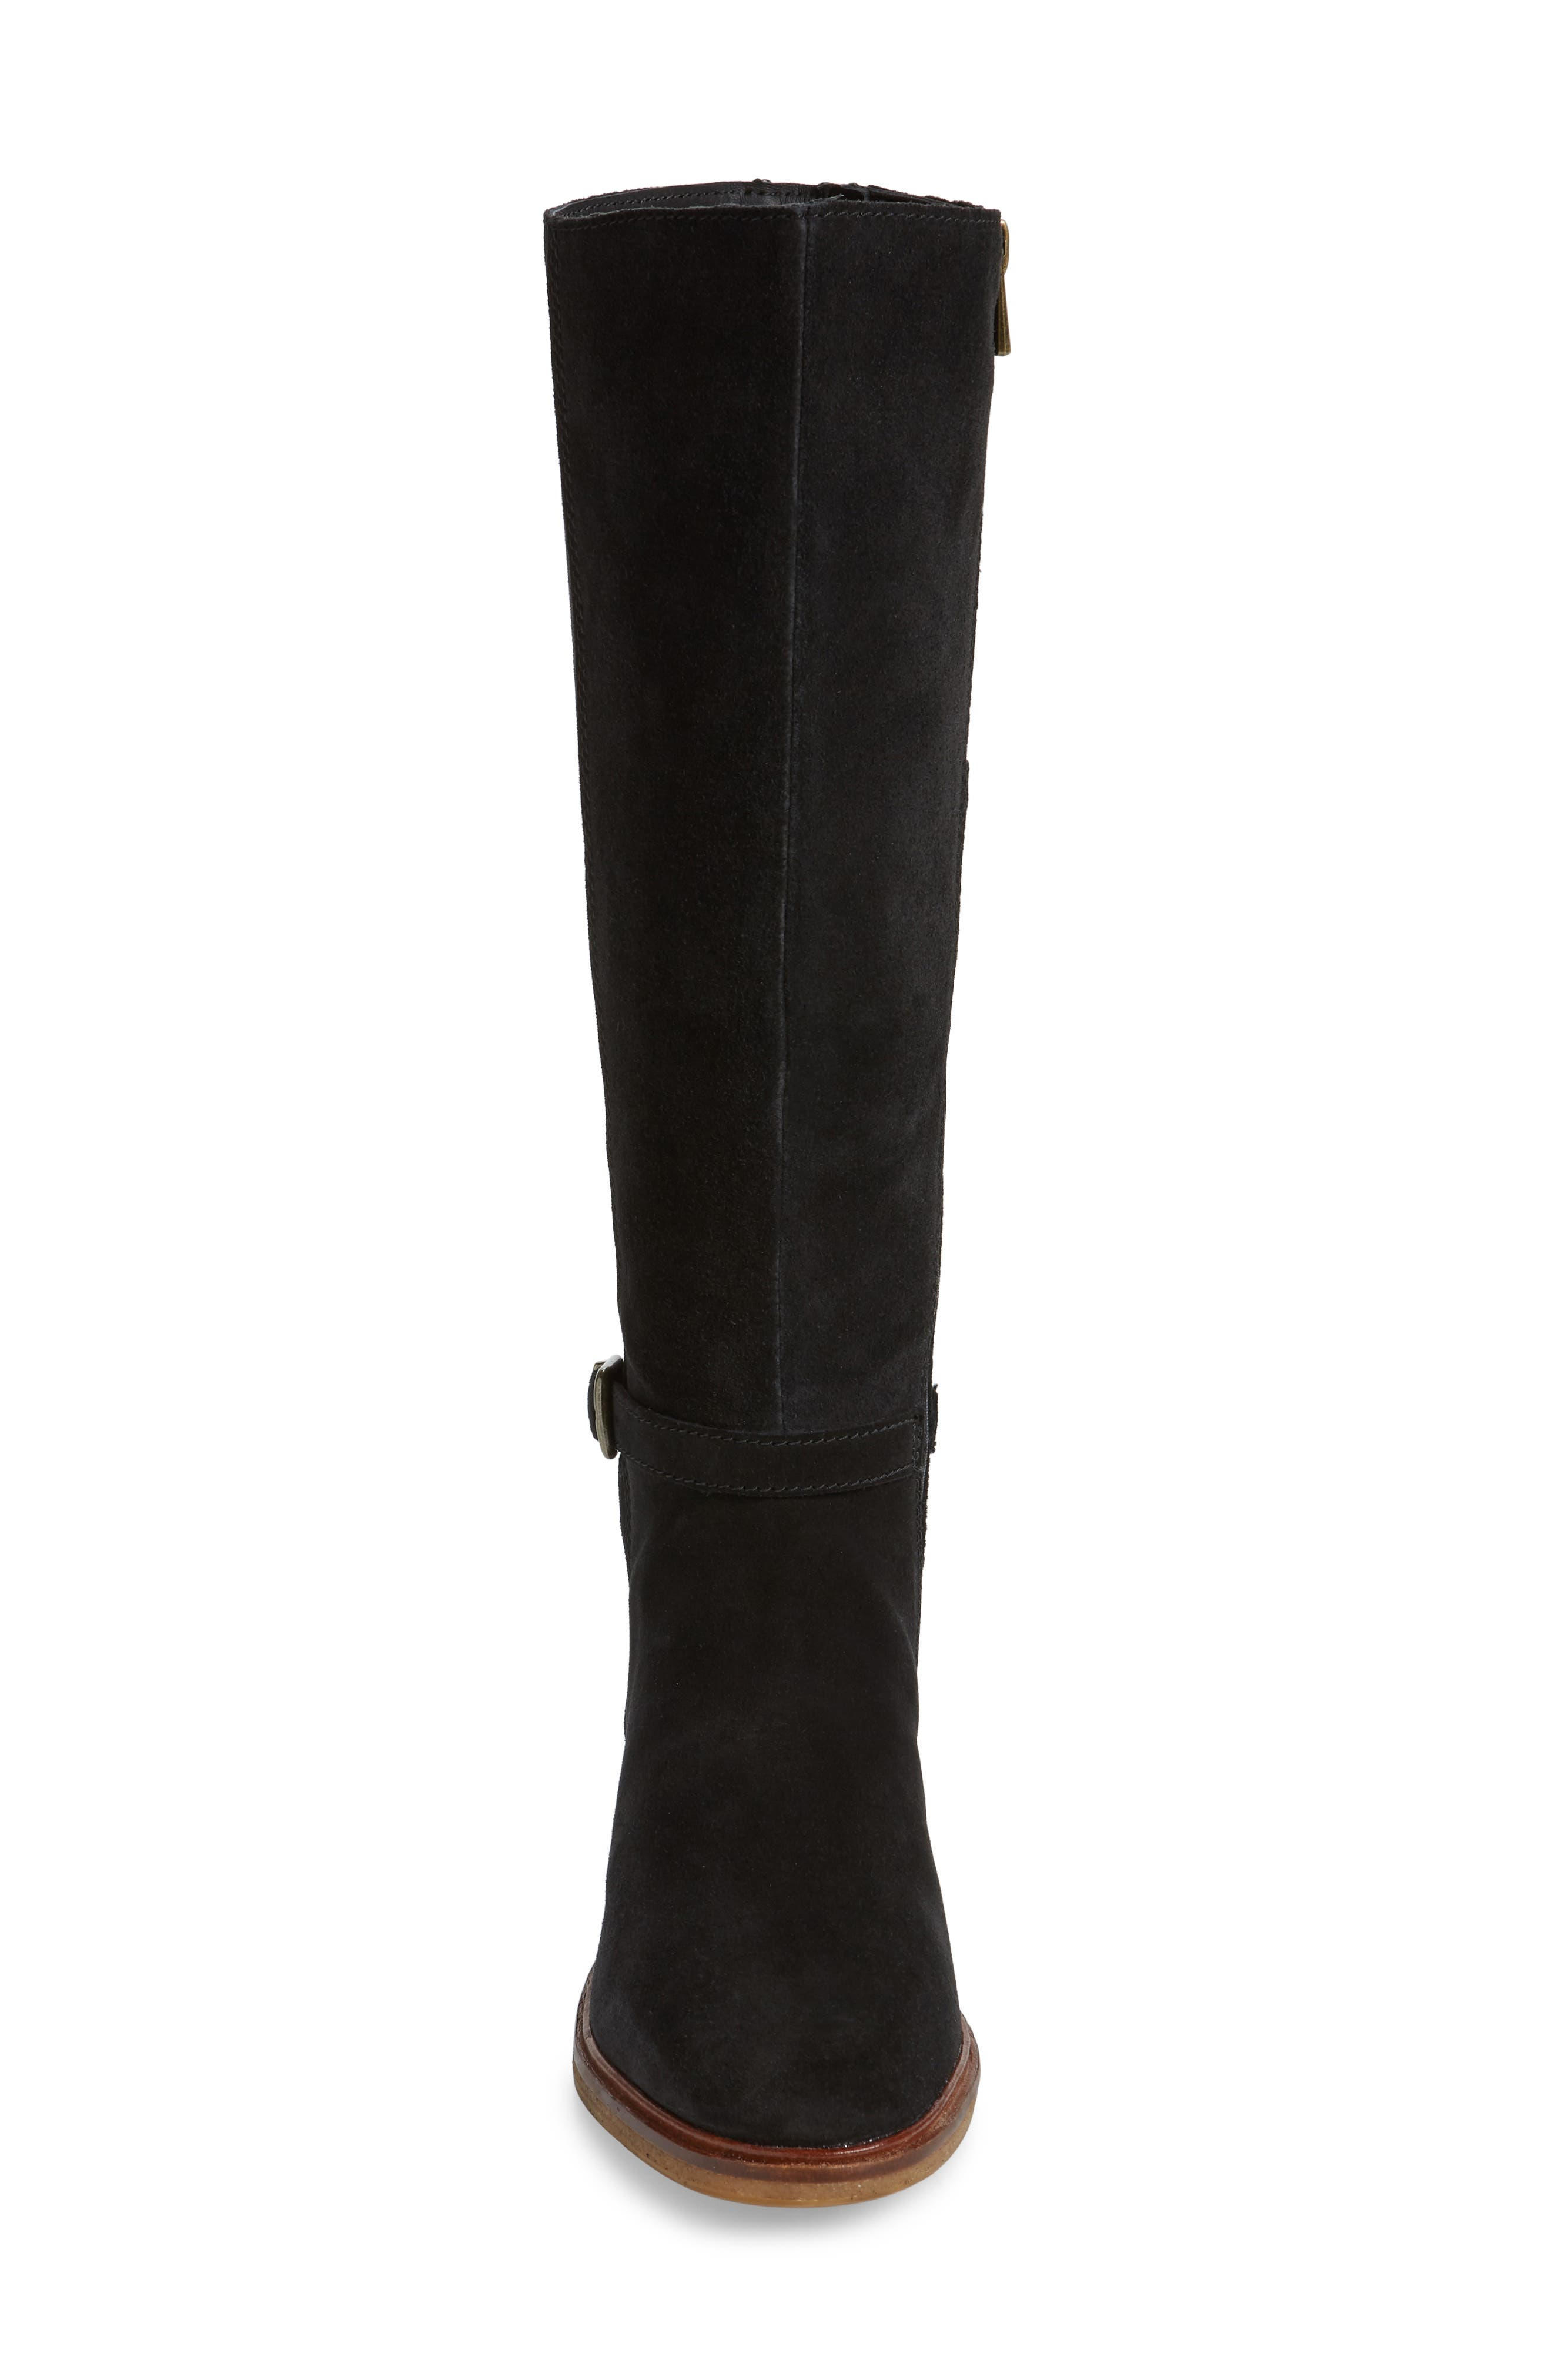 CLARKS<SUP>®</SUP>, Clarkdale Clad Boot, Alternate thumbnail 4, color, BLACK SUEDE